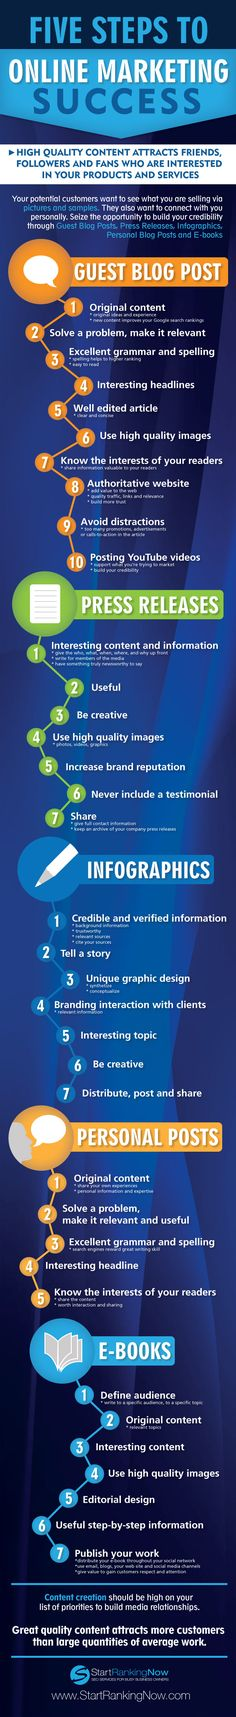 5-Steps-to-Online-Marketing